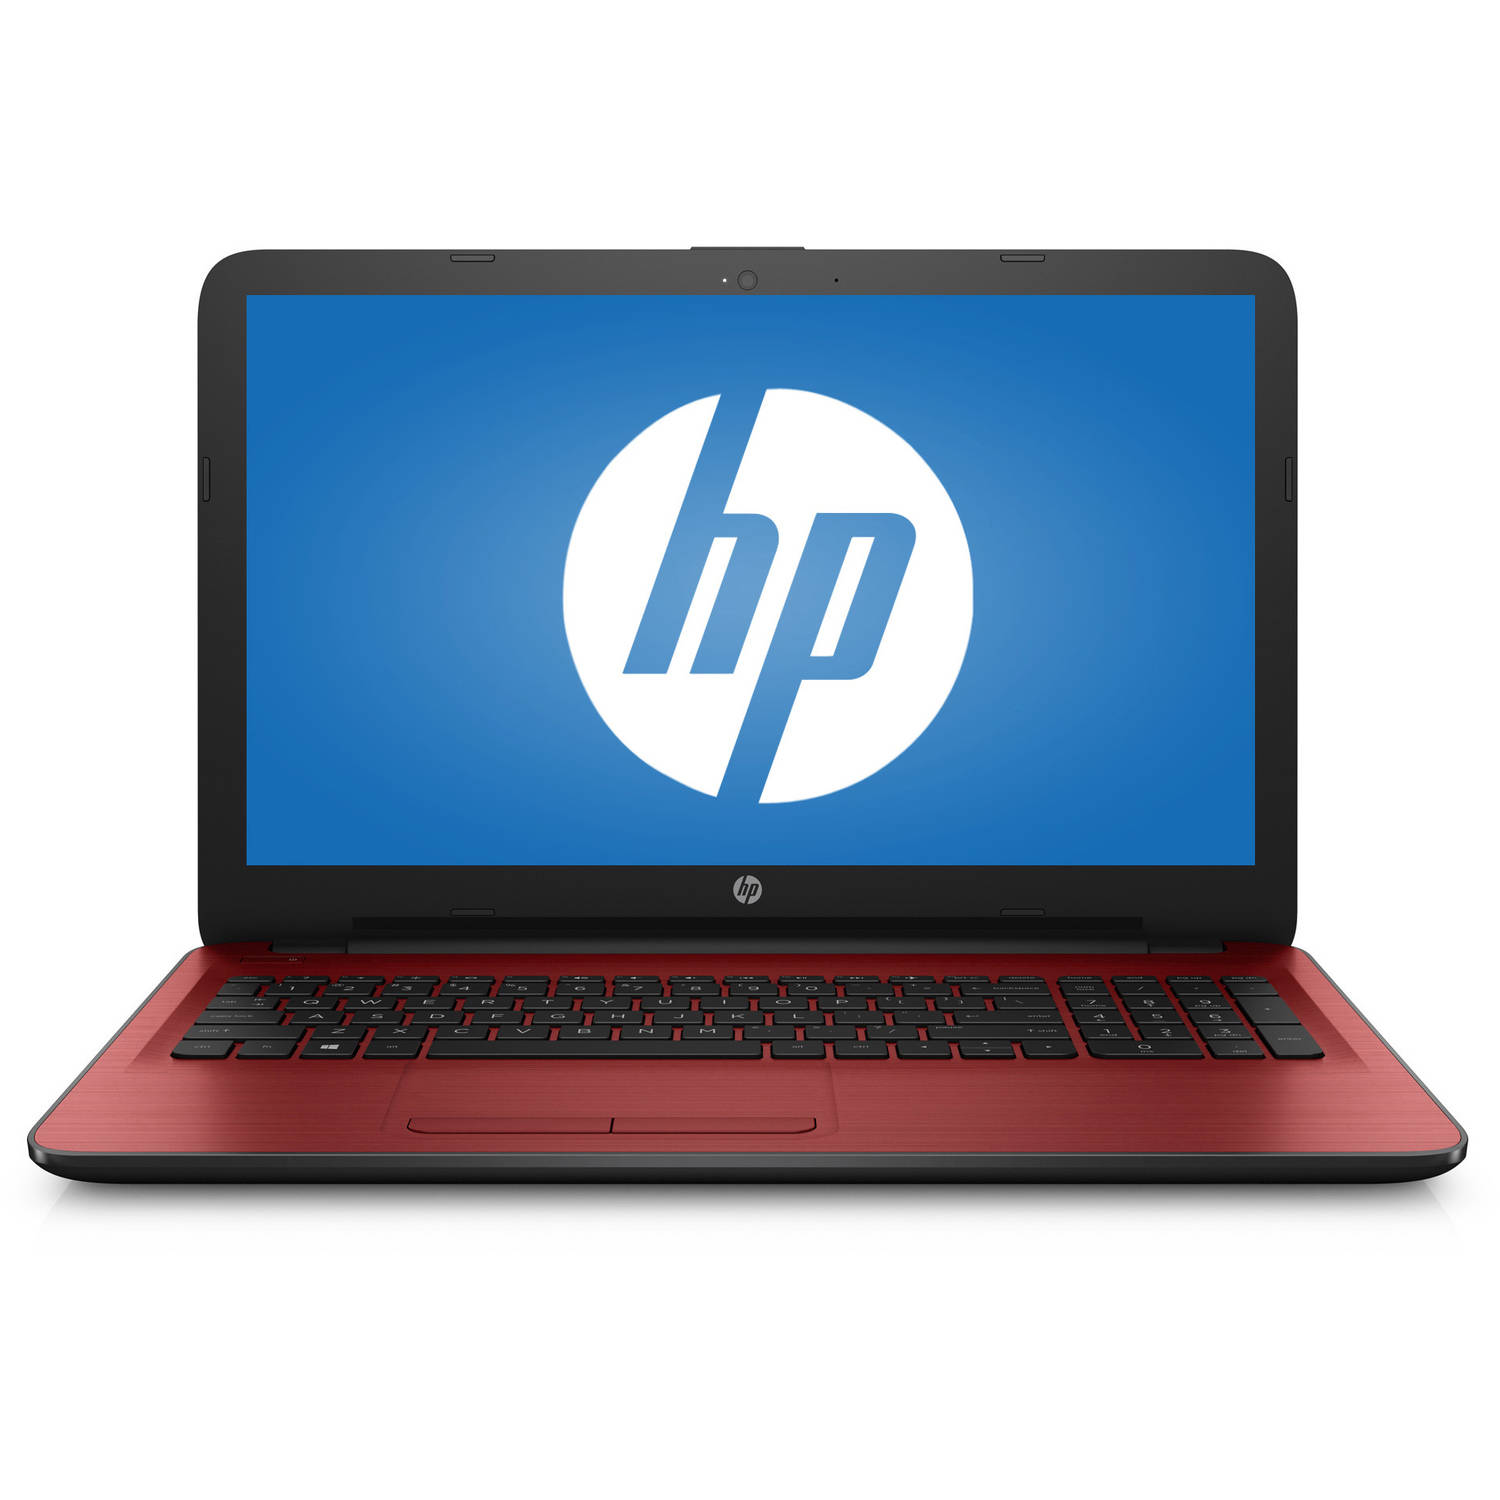 "HP 15.6"" Laptop, touch screen, Windows 10 Home, AMD A8-7410 APU Processor, 4GB RAM, 1TB Hard Drive (Assorted Colors)"